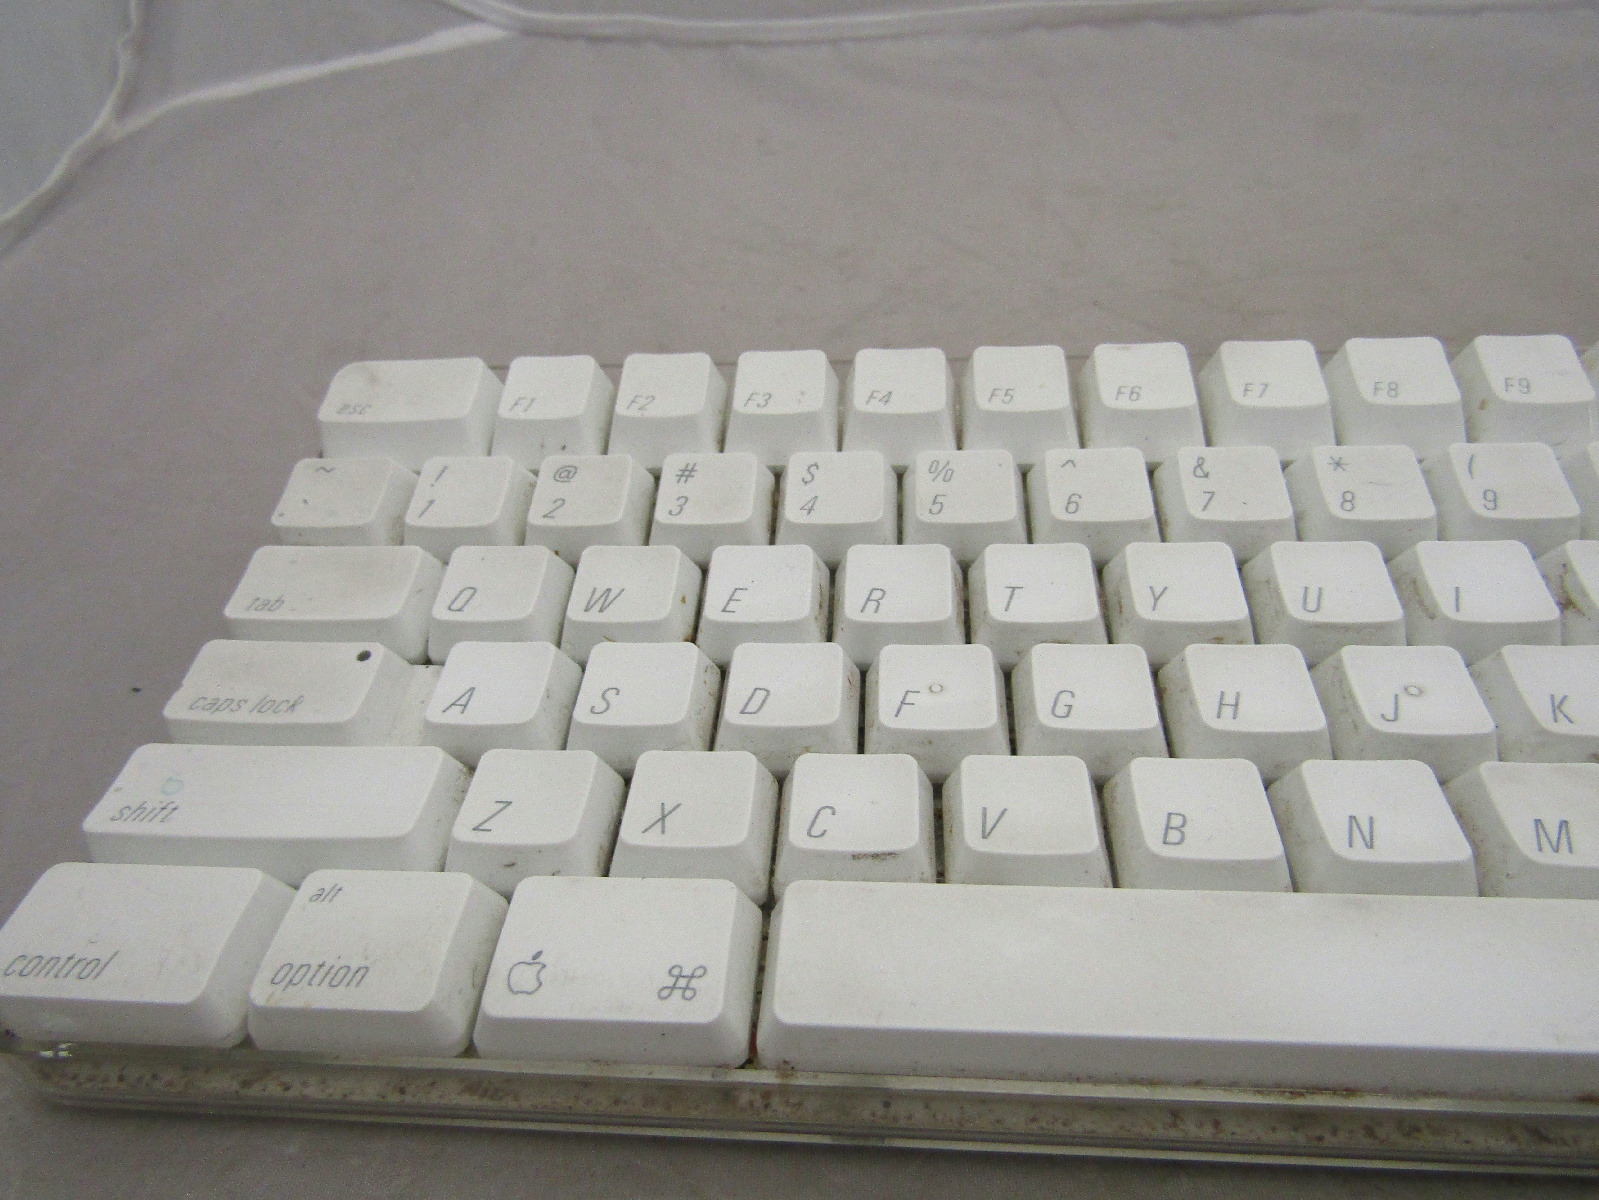 apple mac a1048 wired usb keyboard white computer peripheral ebay. Black Bedroom Furniture Sets. Home Design Ideas